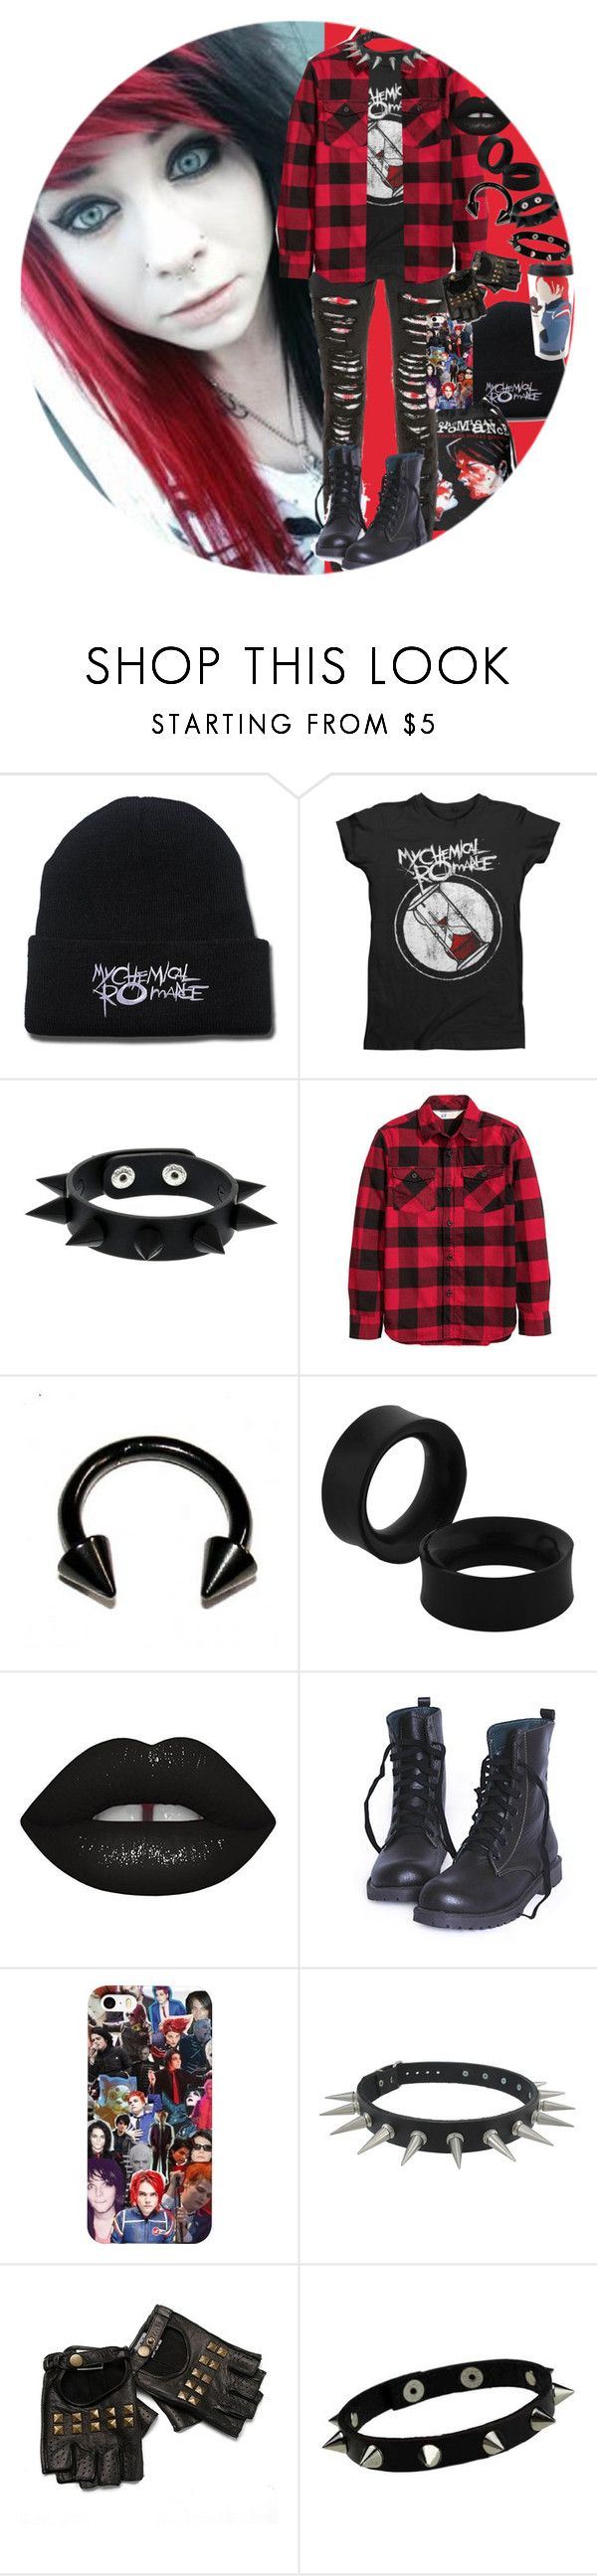 """Untitled #794"" by chemicalfallout249 on Polyvore featuring Lime Crime"